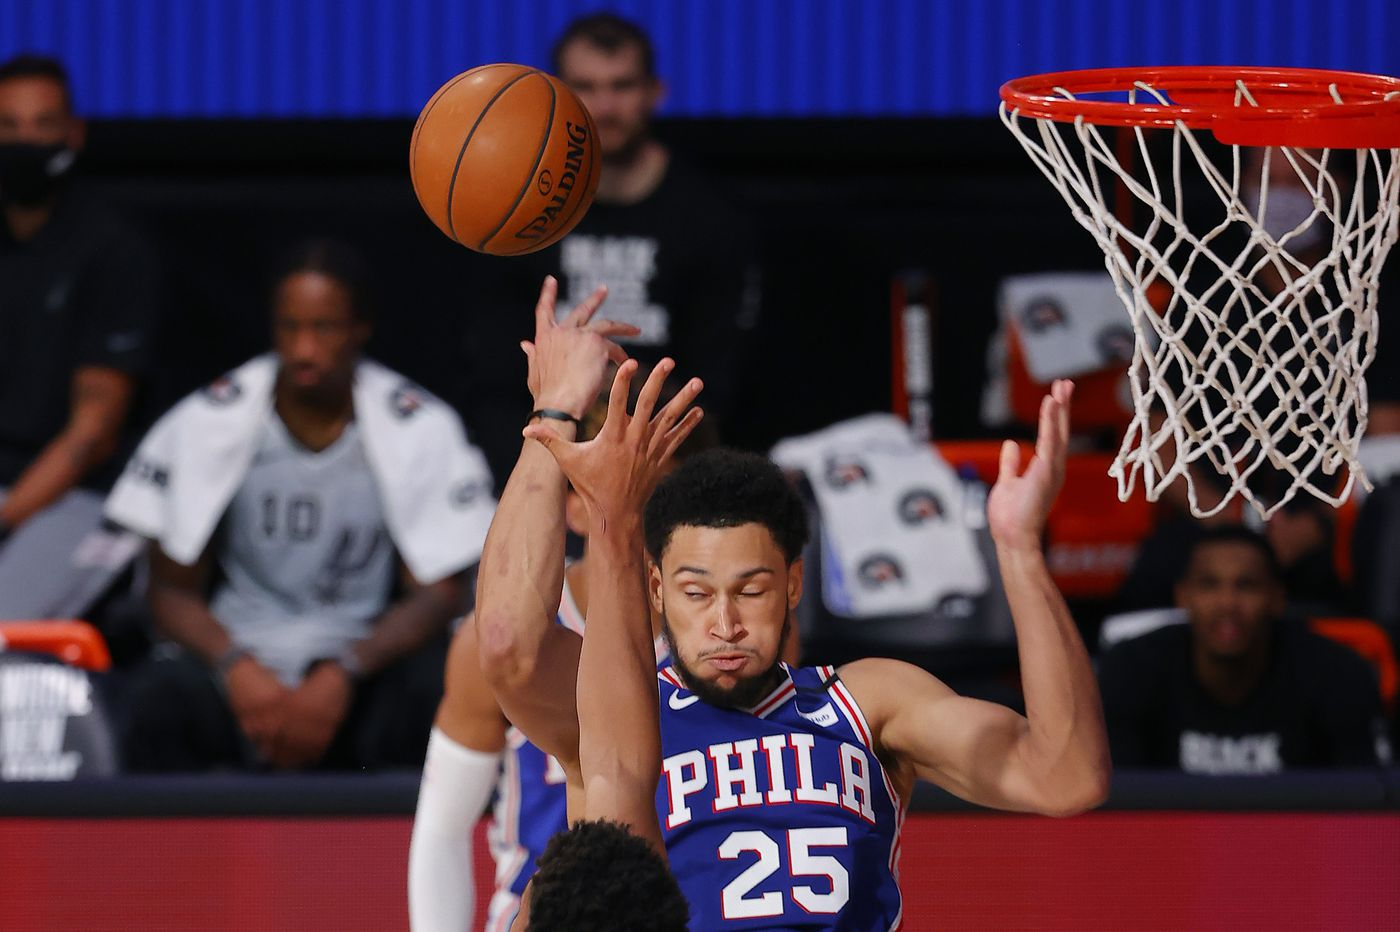 Ben Simmons has yet to report to Orlando. The Sixers need to get their struggling star going | David Murphy